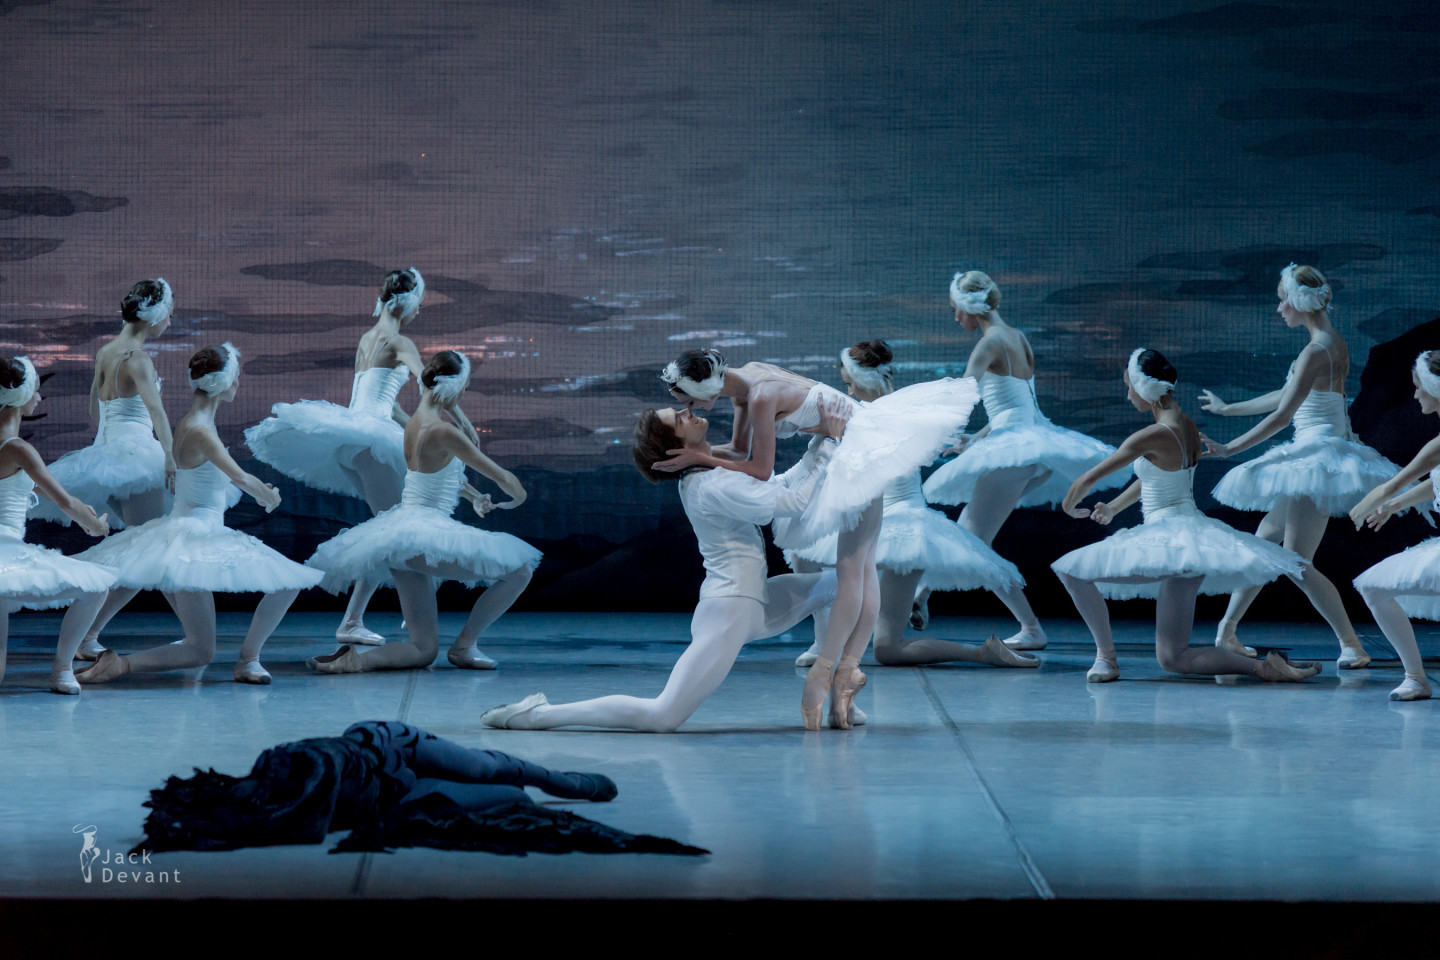 Polina Semionova and Friedemann Vogel in Swan Lake final